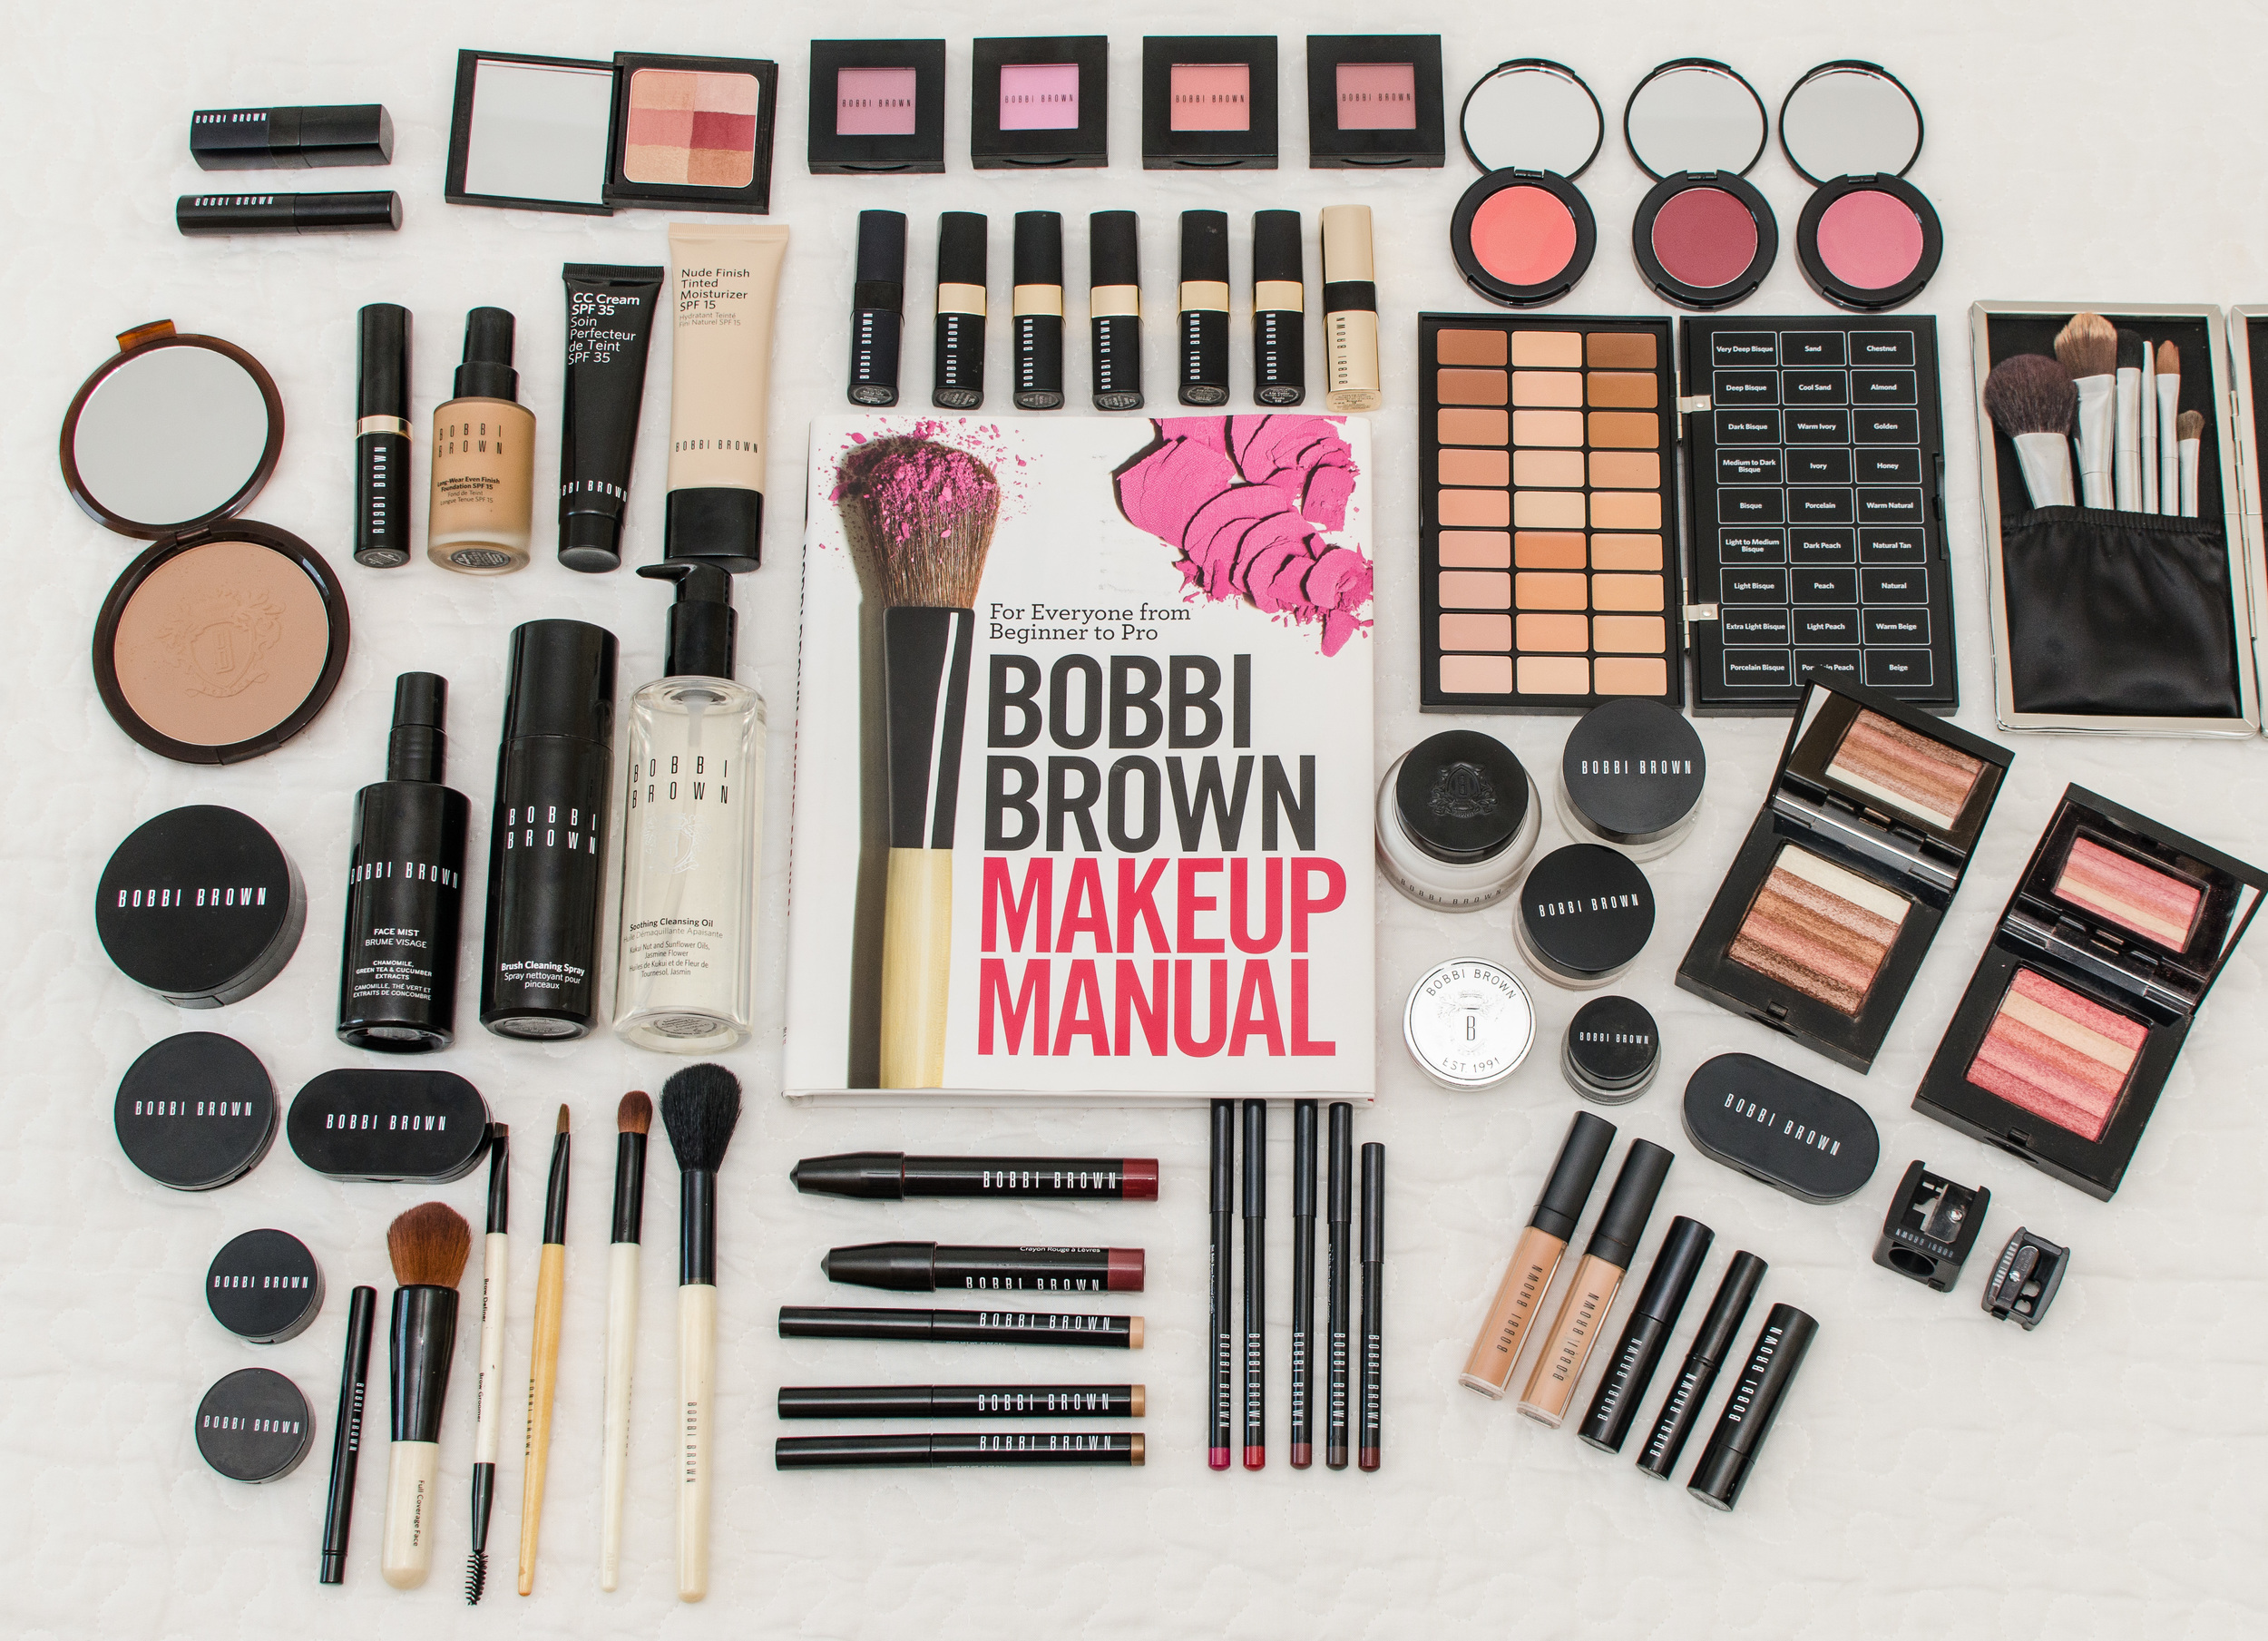 Bobbi Brown Makeup Manual Epub Saubhaya Makeup